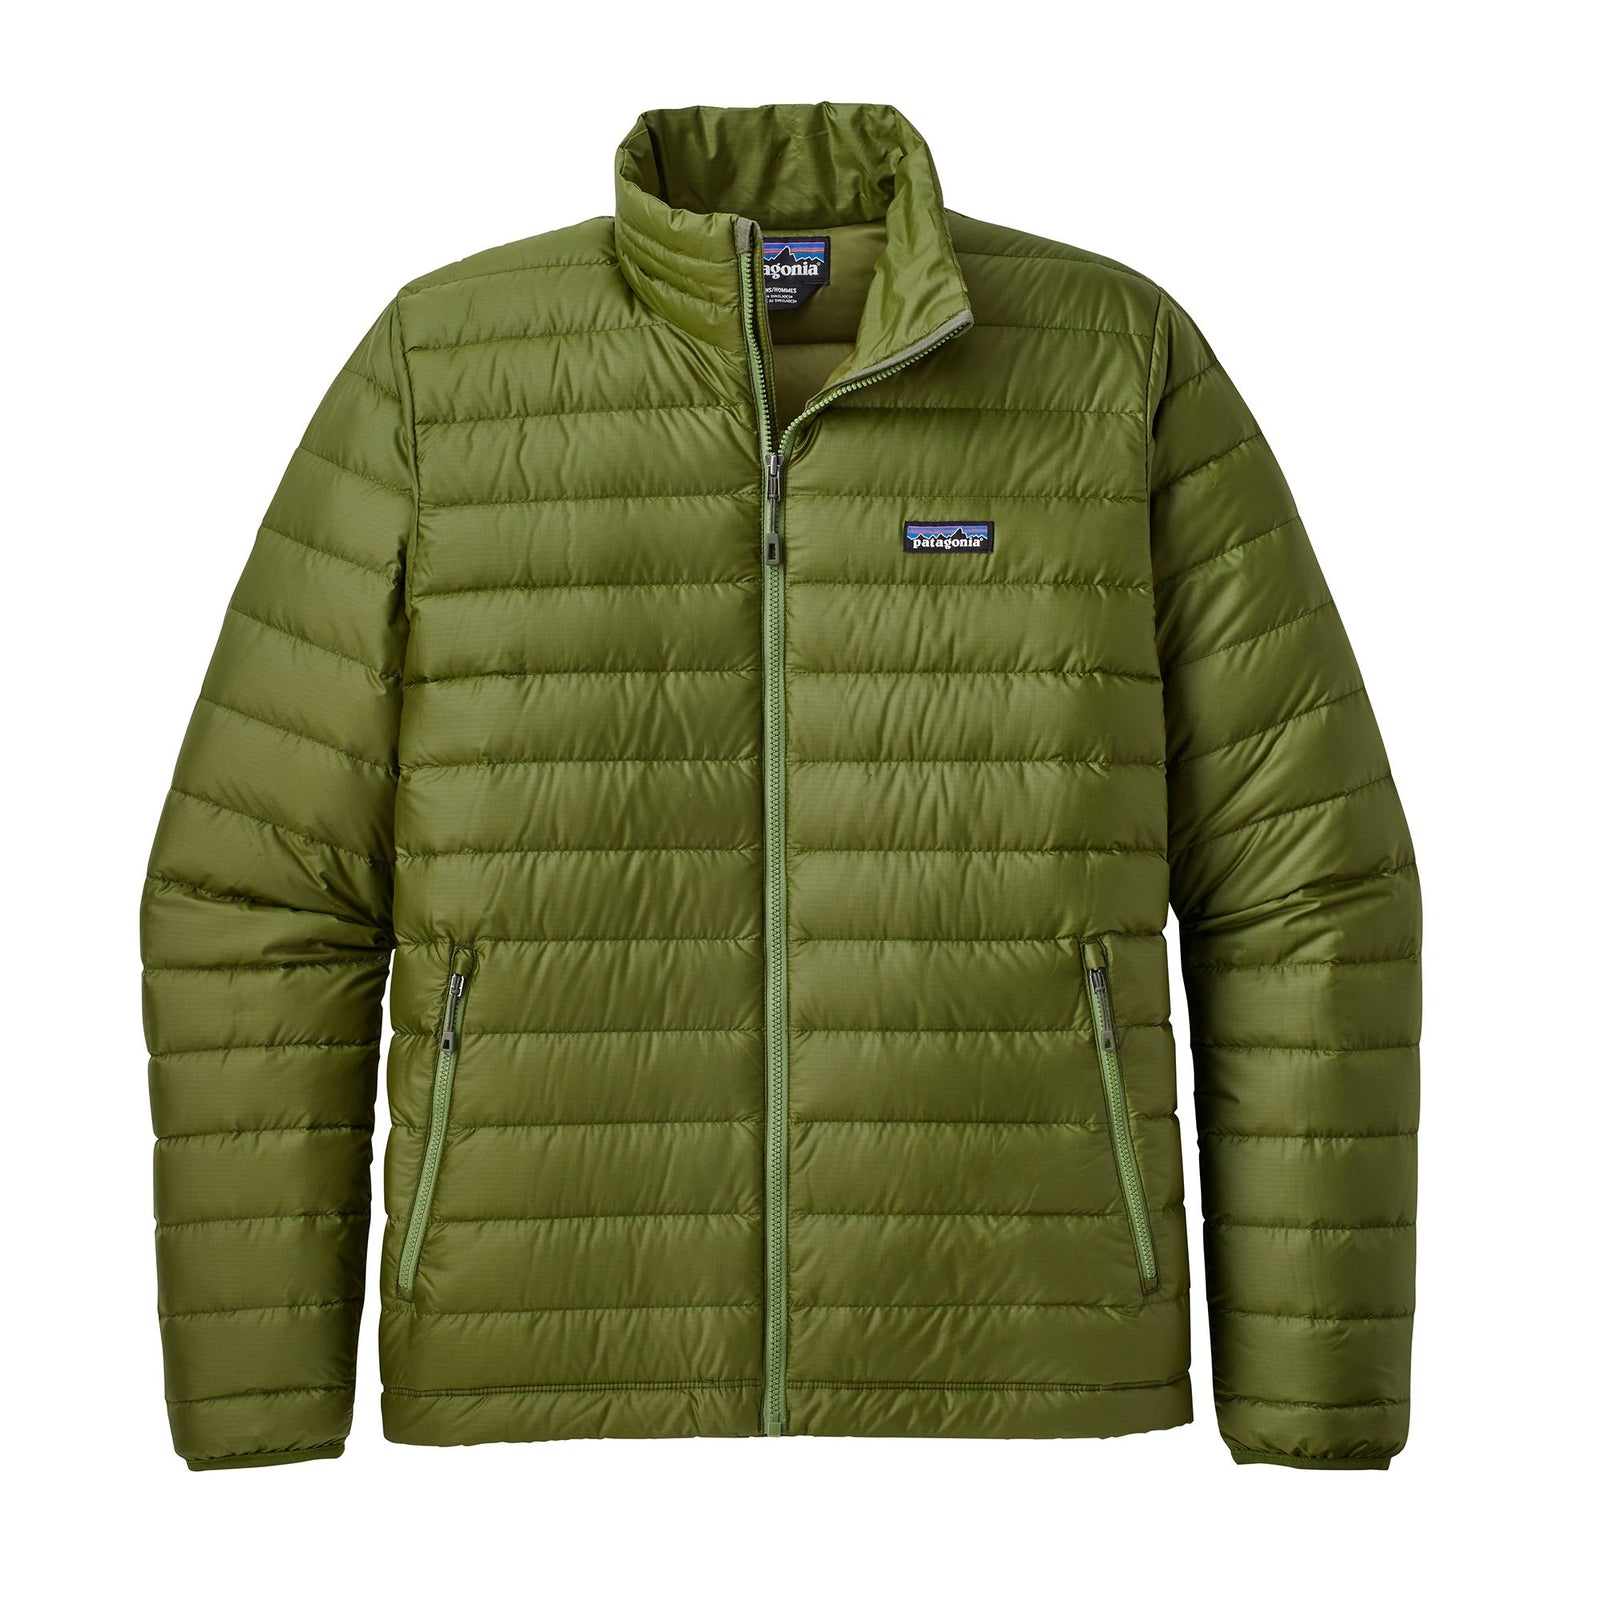 Patagonia Men's Down Sweater - Trailblazer Outdoors, Pickering